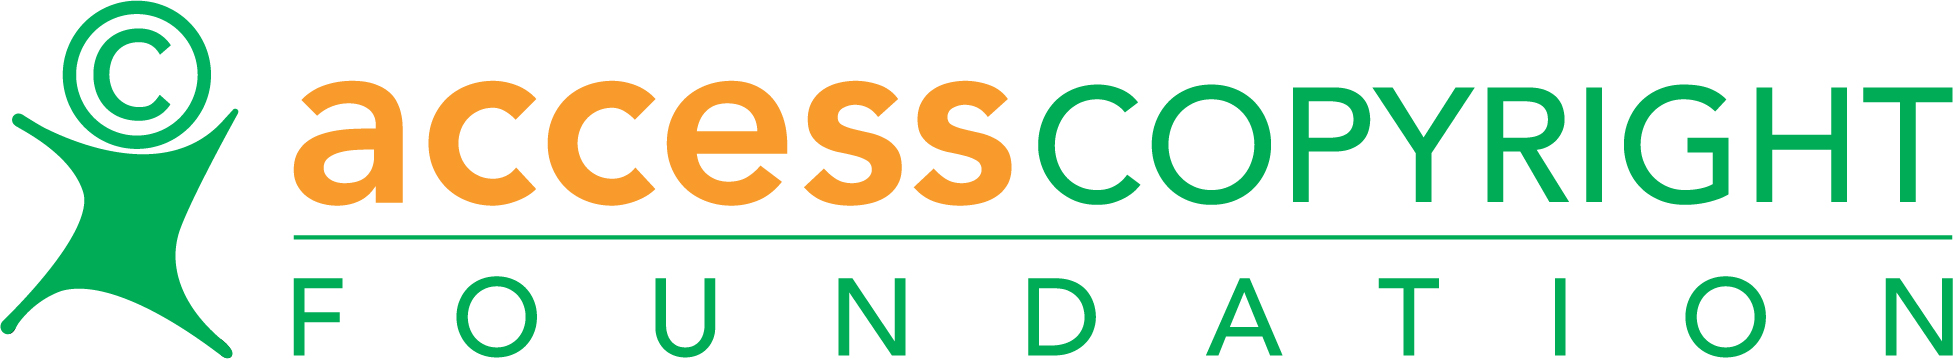 Access Copyright Foundation Logo - Colour